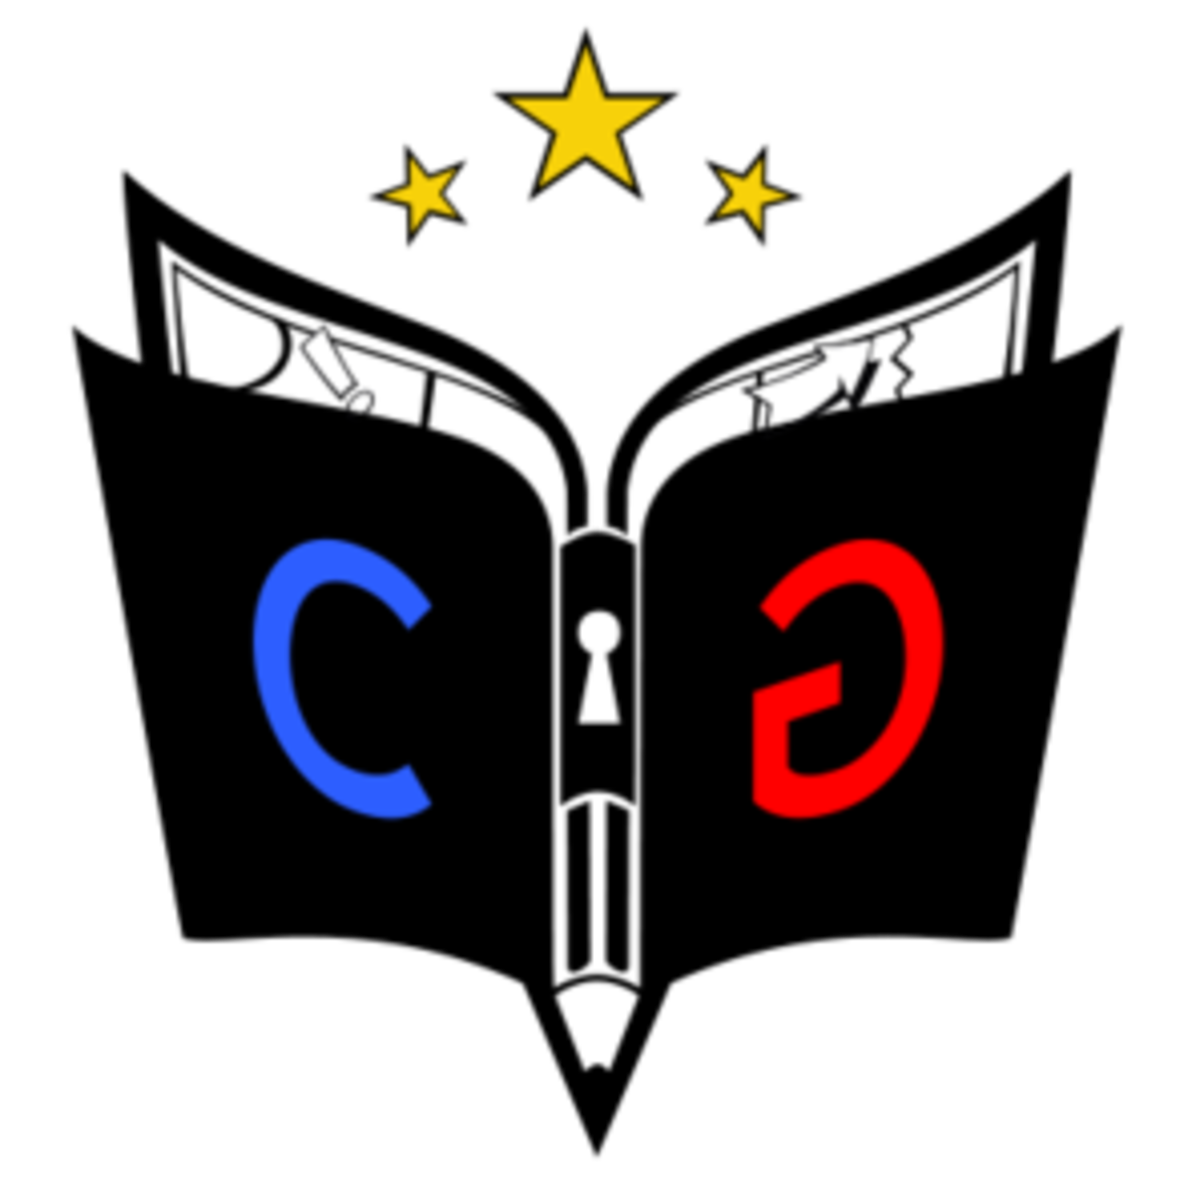 Comicgate logo after EVS trademarked the term.